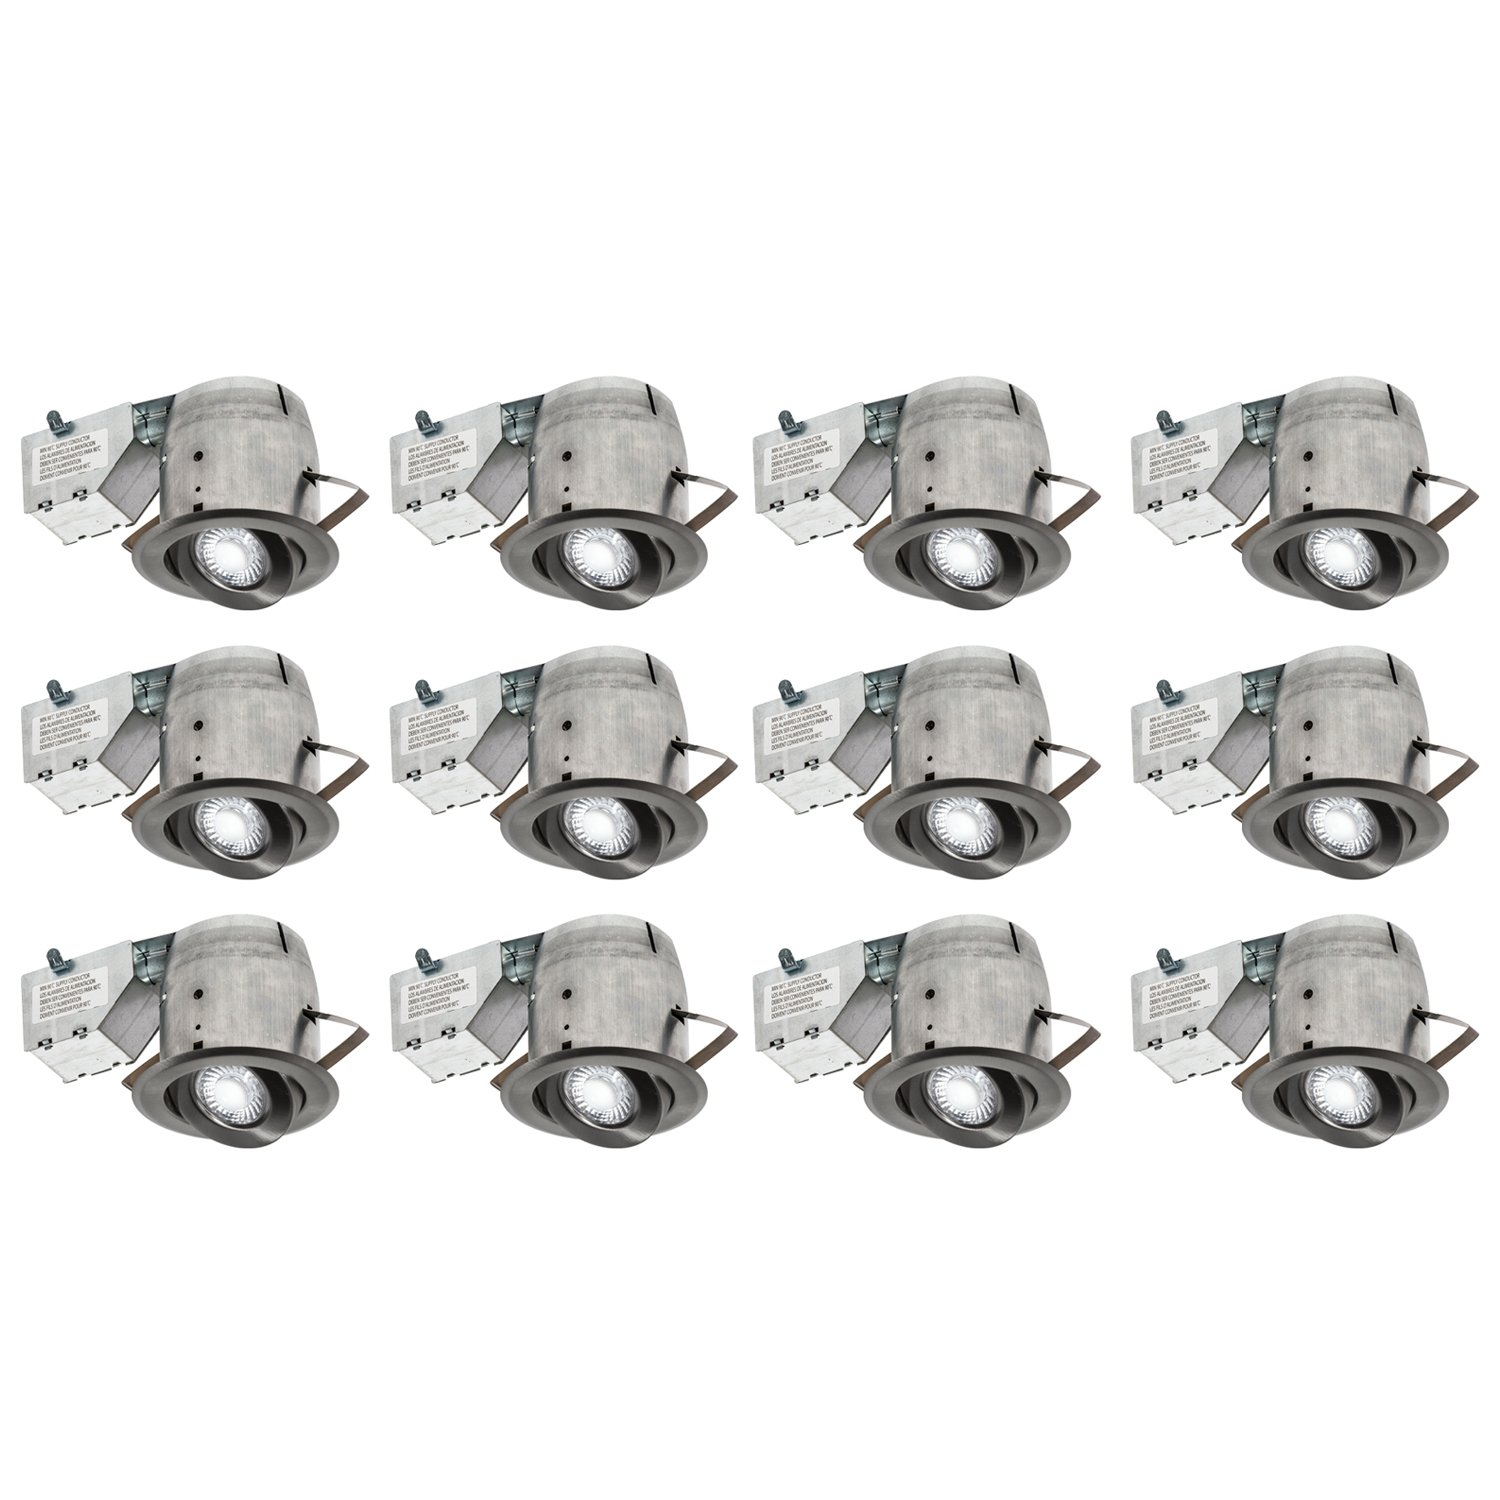 Nadair 3-inch LED Recessed Lighting Kit (x12) Swivel Spotlight Dimmable Downlight - IC Rated - 3000K Warm White GU10 550 Lumens Bulbs (50 Watts Equivalent) Included, 12-Pack Brushed Nickel Color